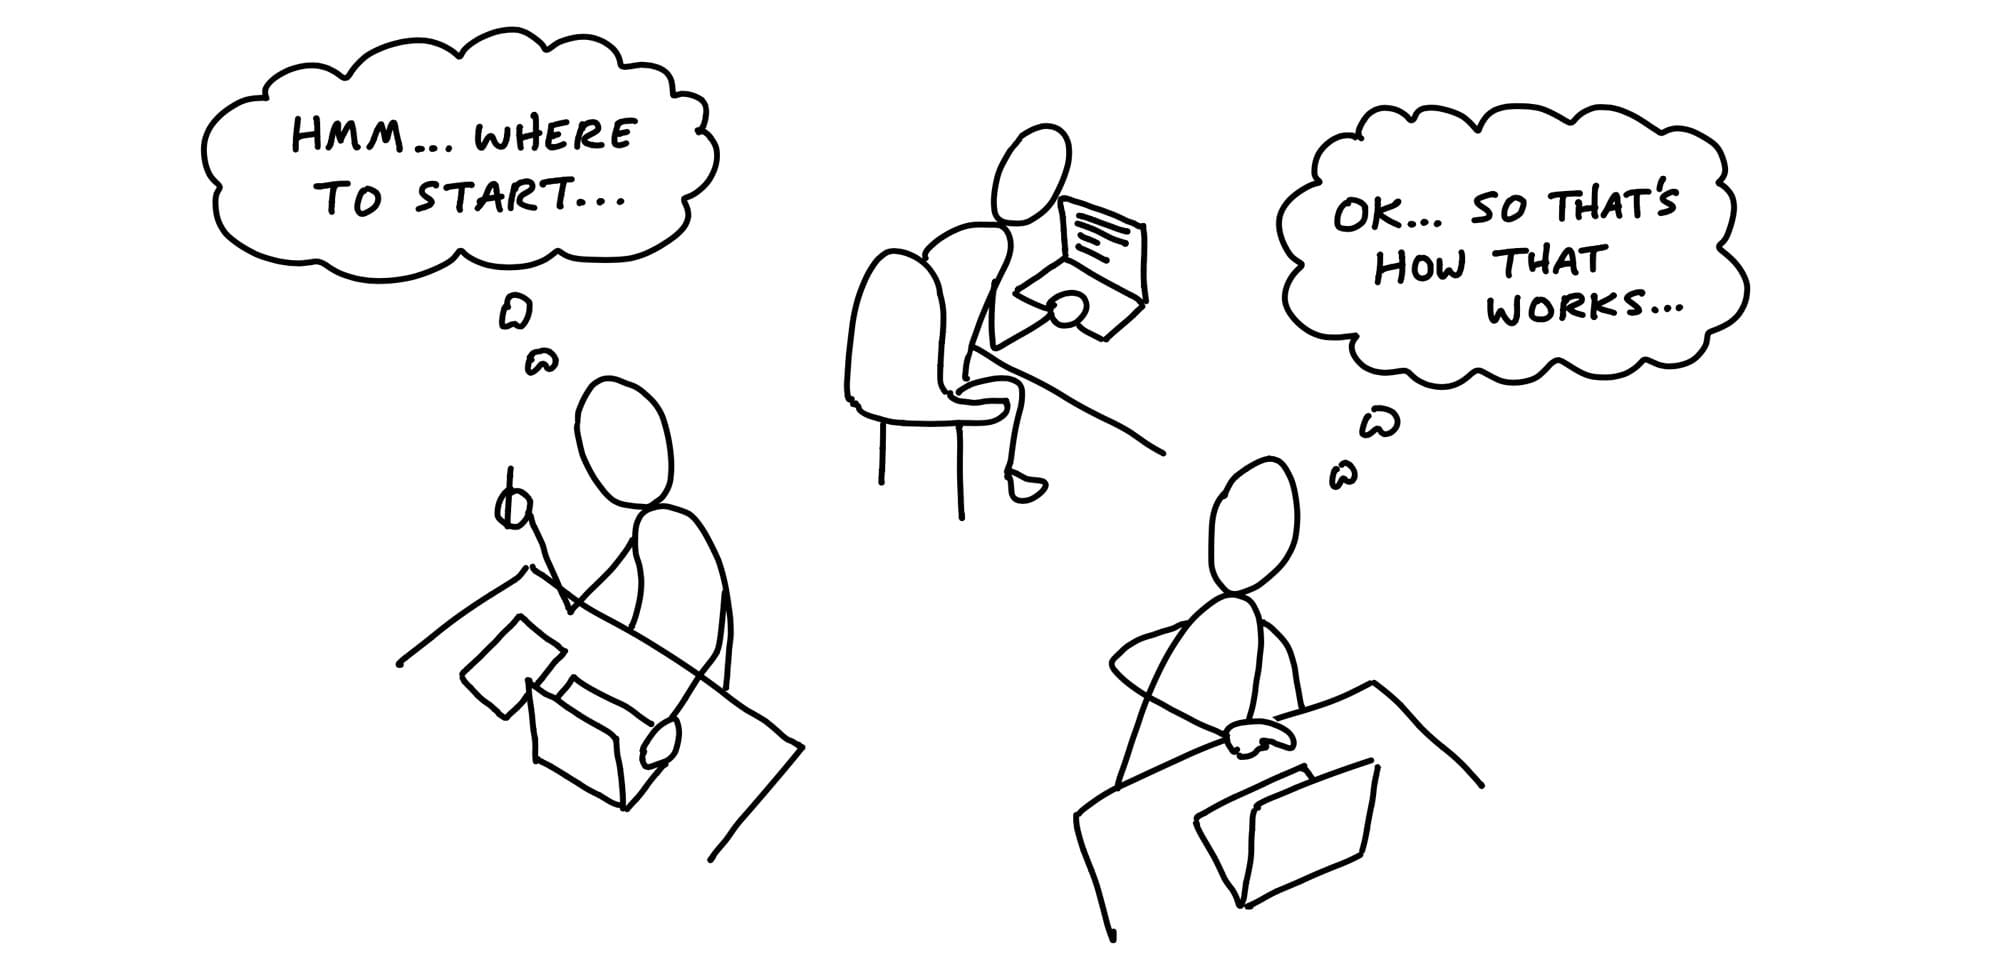 Cartoon. Three figures are seated at their desks, hunching over laptops as if very focused. On the left, one holds a pencil in the air and gazes down at a piece of paper beside the laptop. A thought bubble says: Hmm... Where to start. On the right, another figure points to the laptop and leans forward, thinking: OK... so that's how that works.